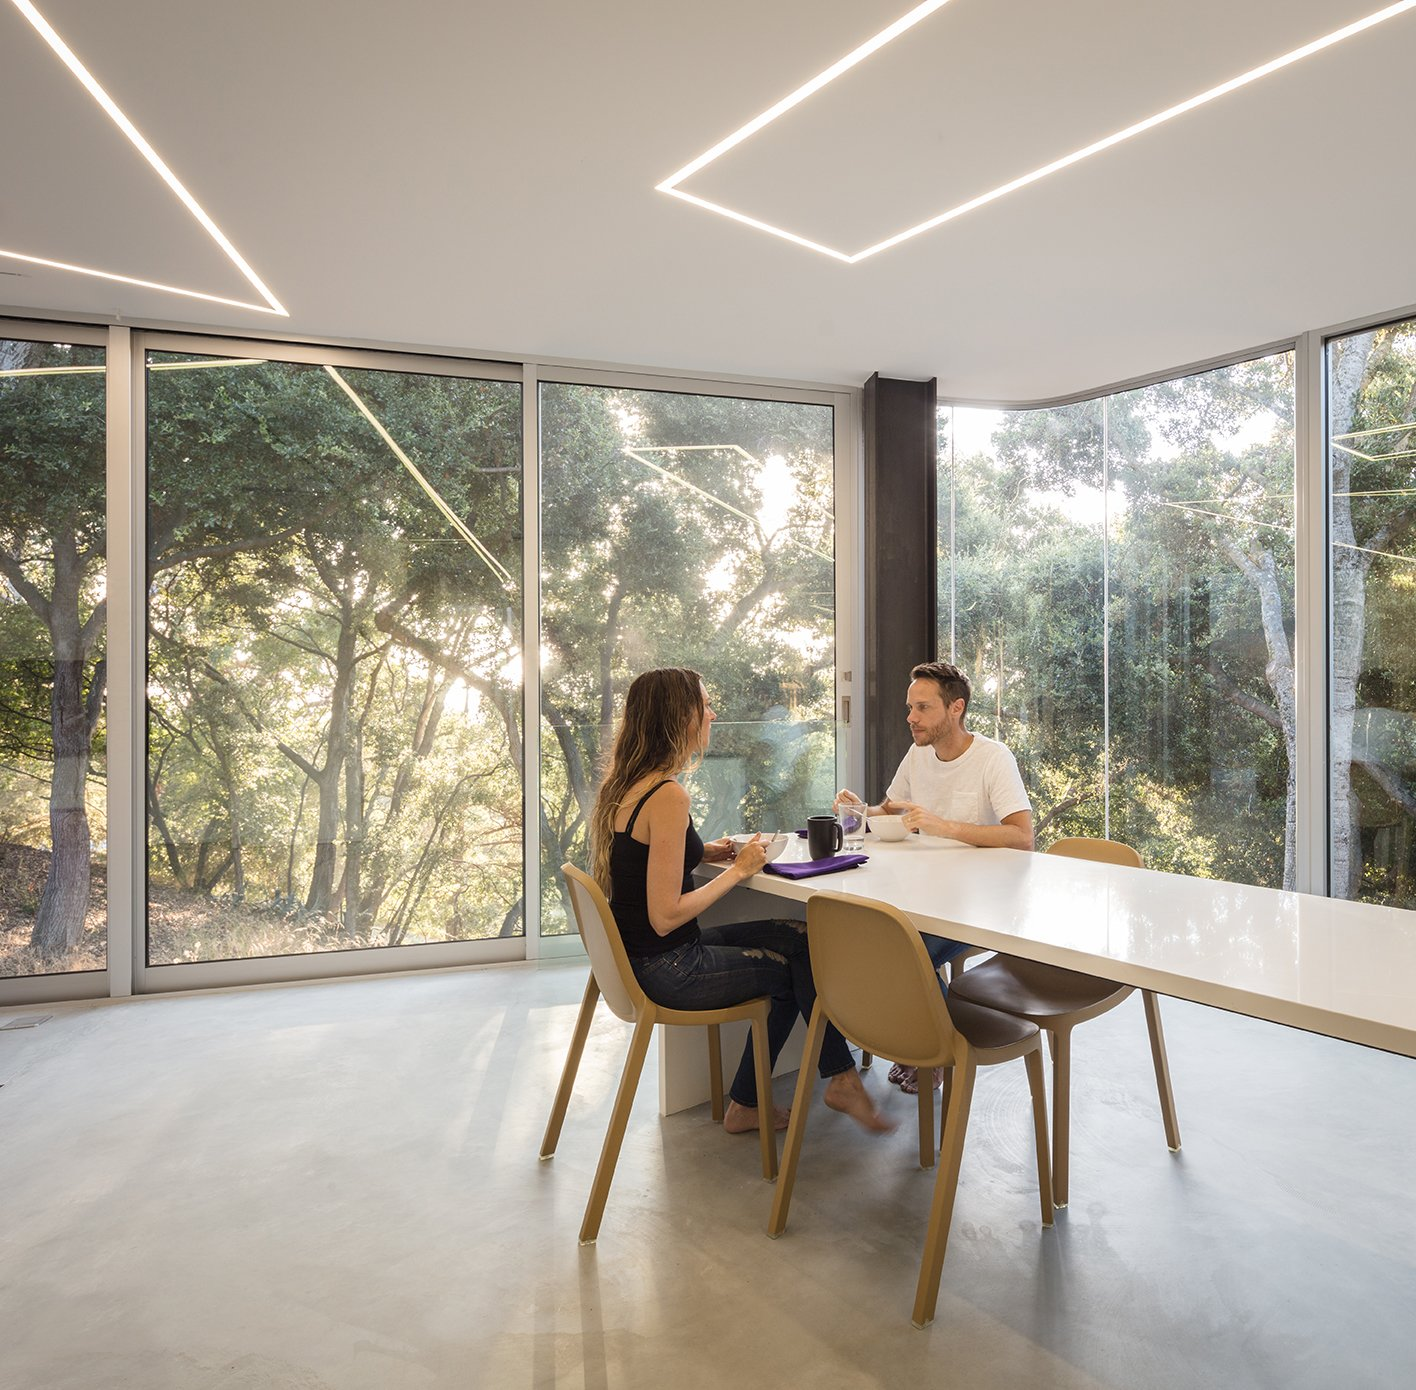 Dining Room, Table, Chair, Concrete Floor, and Ceiling Lighting A 22-foot-long white composite quartz countertop provides both kitchen work space and a dining table. - Cupertino, California Dwell Magazine : September / October 2017  Photo 5 of 10 in The Conversation Pit Makes a Much-Appreciated Comeback at an Ultramodern Home in Cupertino